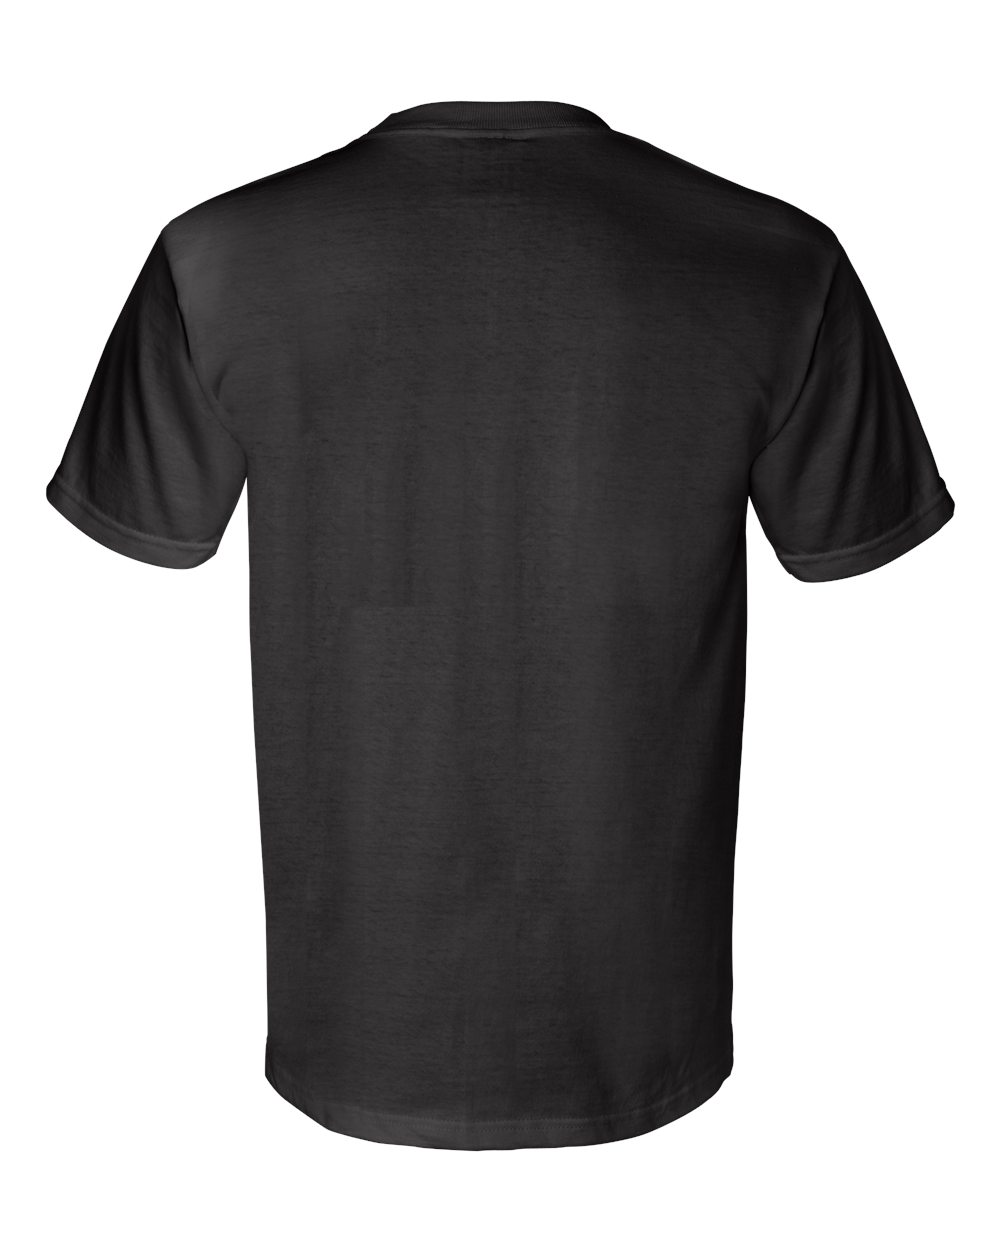 Bayside-Mens-Union-Made-Short-Sleeve-T-Shirt-with-a-Pocket-3015-up-to-3XL thumbnail 7